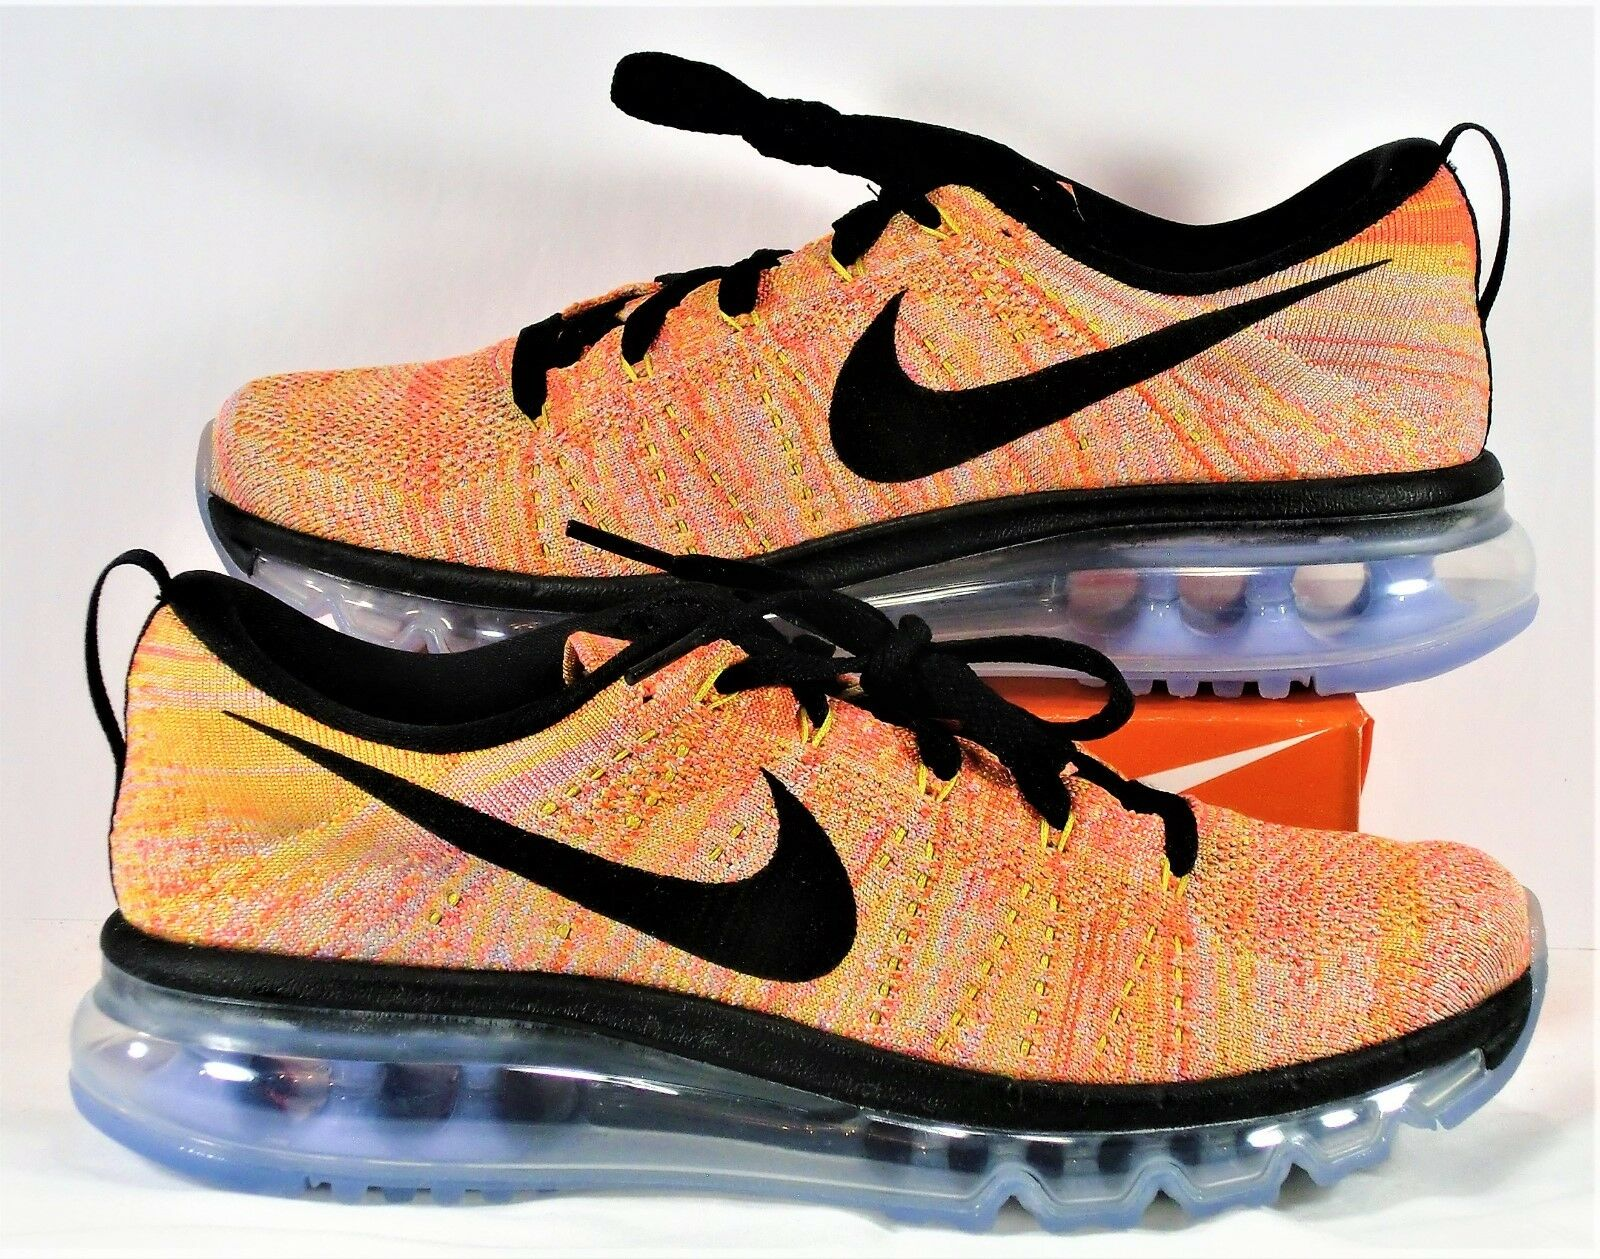 Nike Air Flyknit Max Black & Hot Punch Running Shoes Sz 11.5 NEW 620659 406